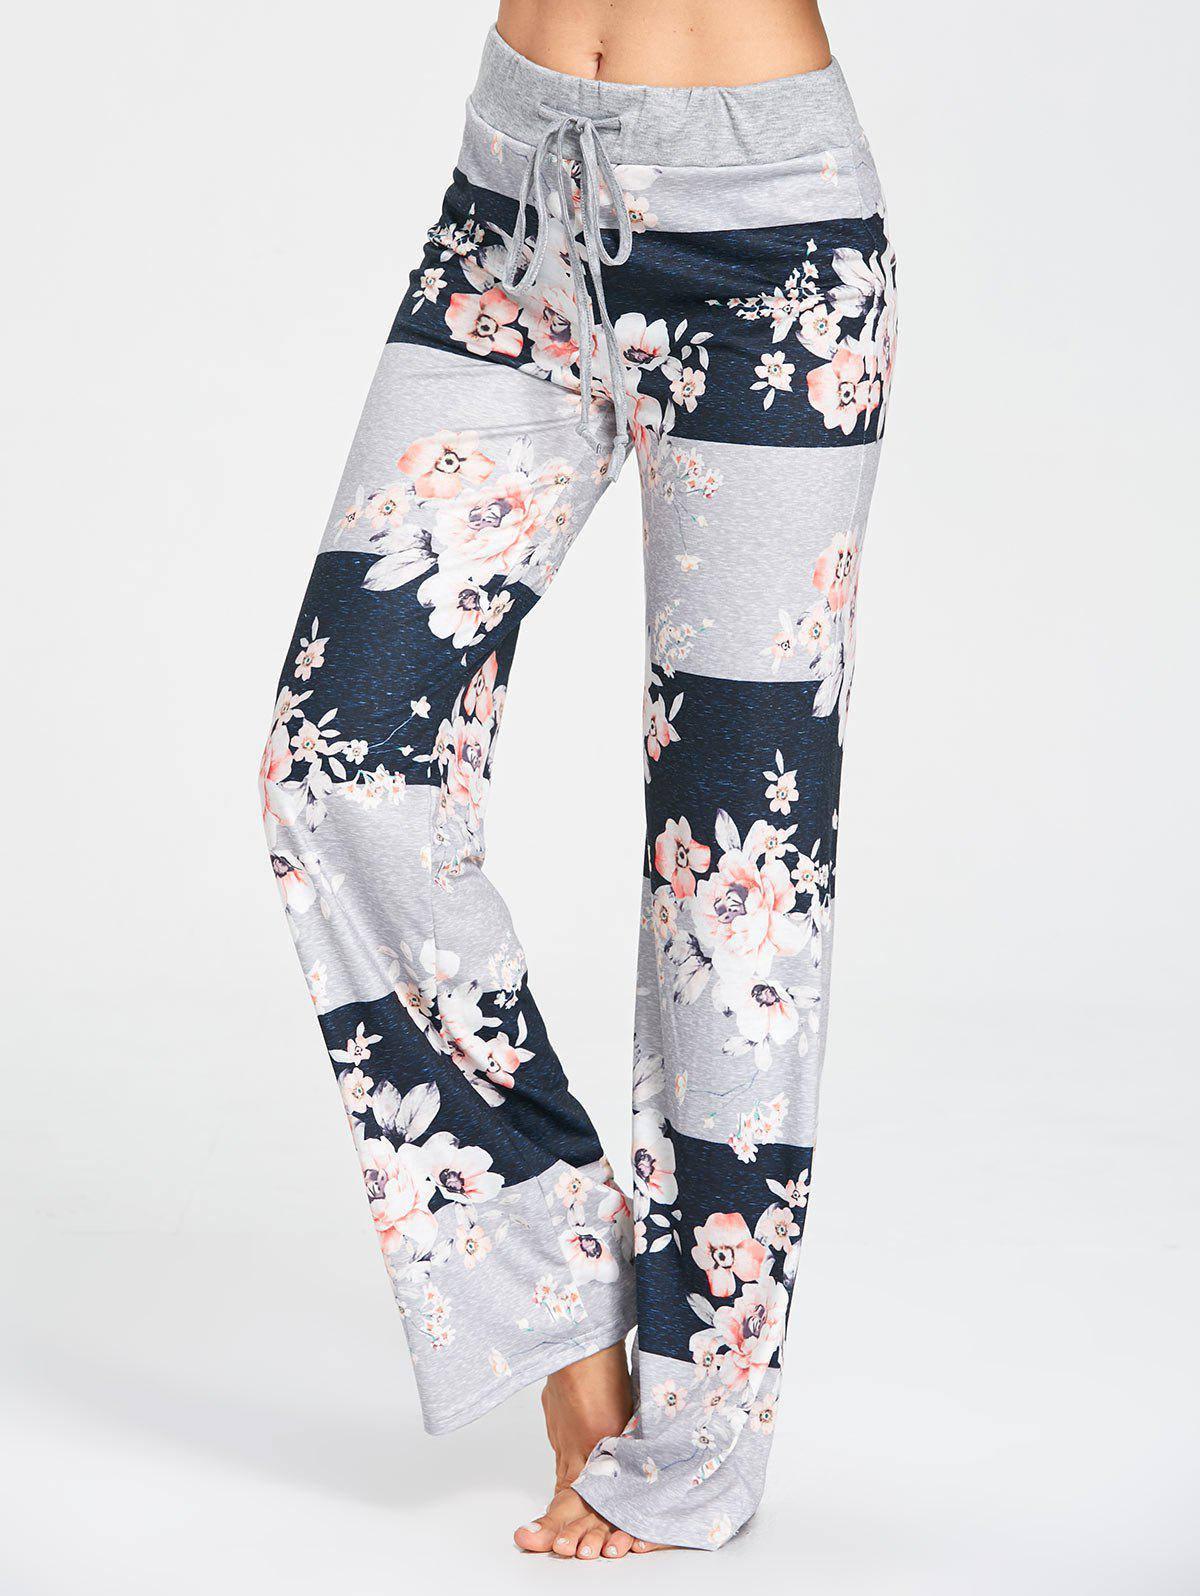 Drawstring Waist Flower Print Pajama Pants - GRAY XL